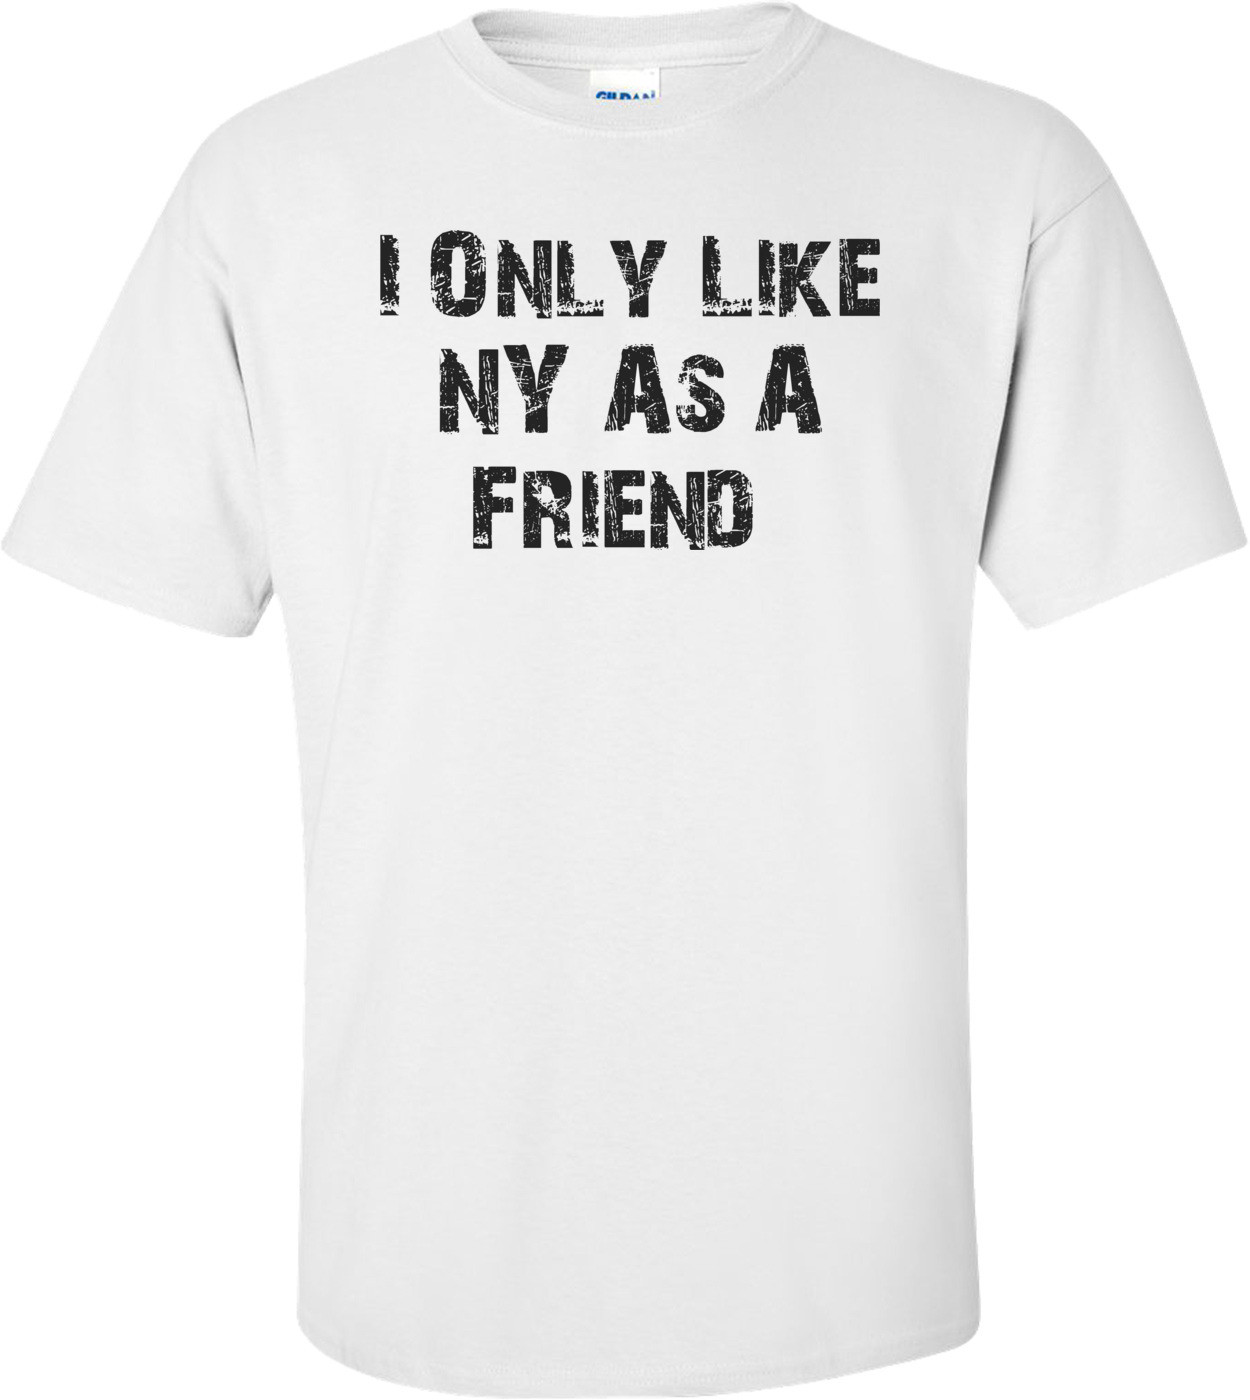 I Only Like NY As A Friend  T-Shirt